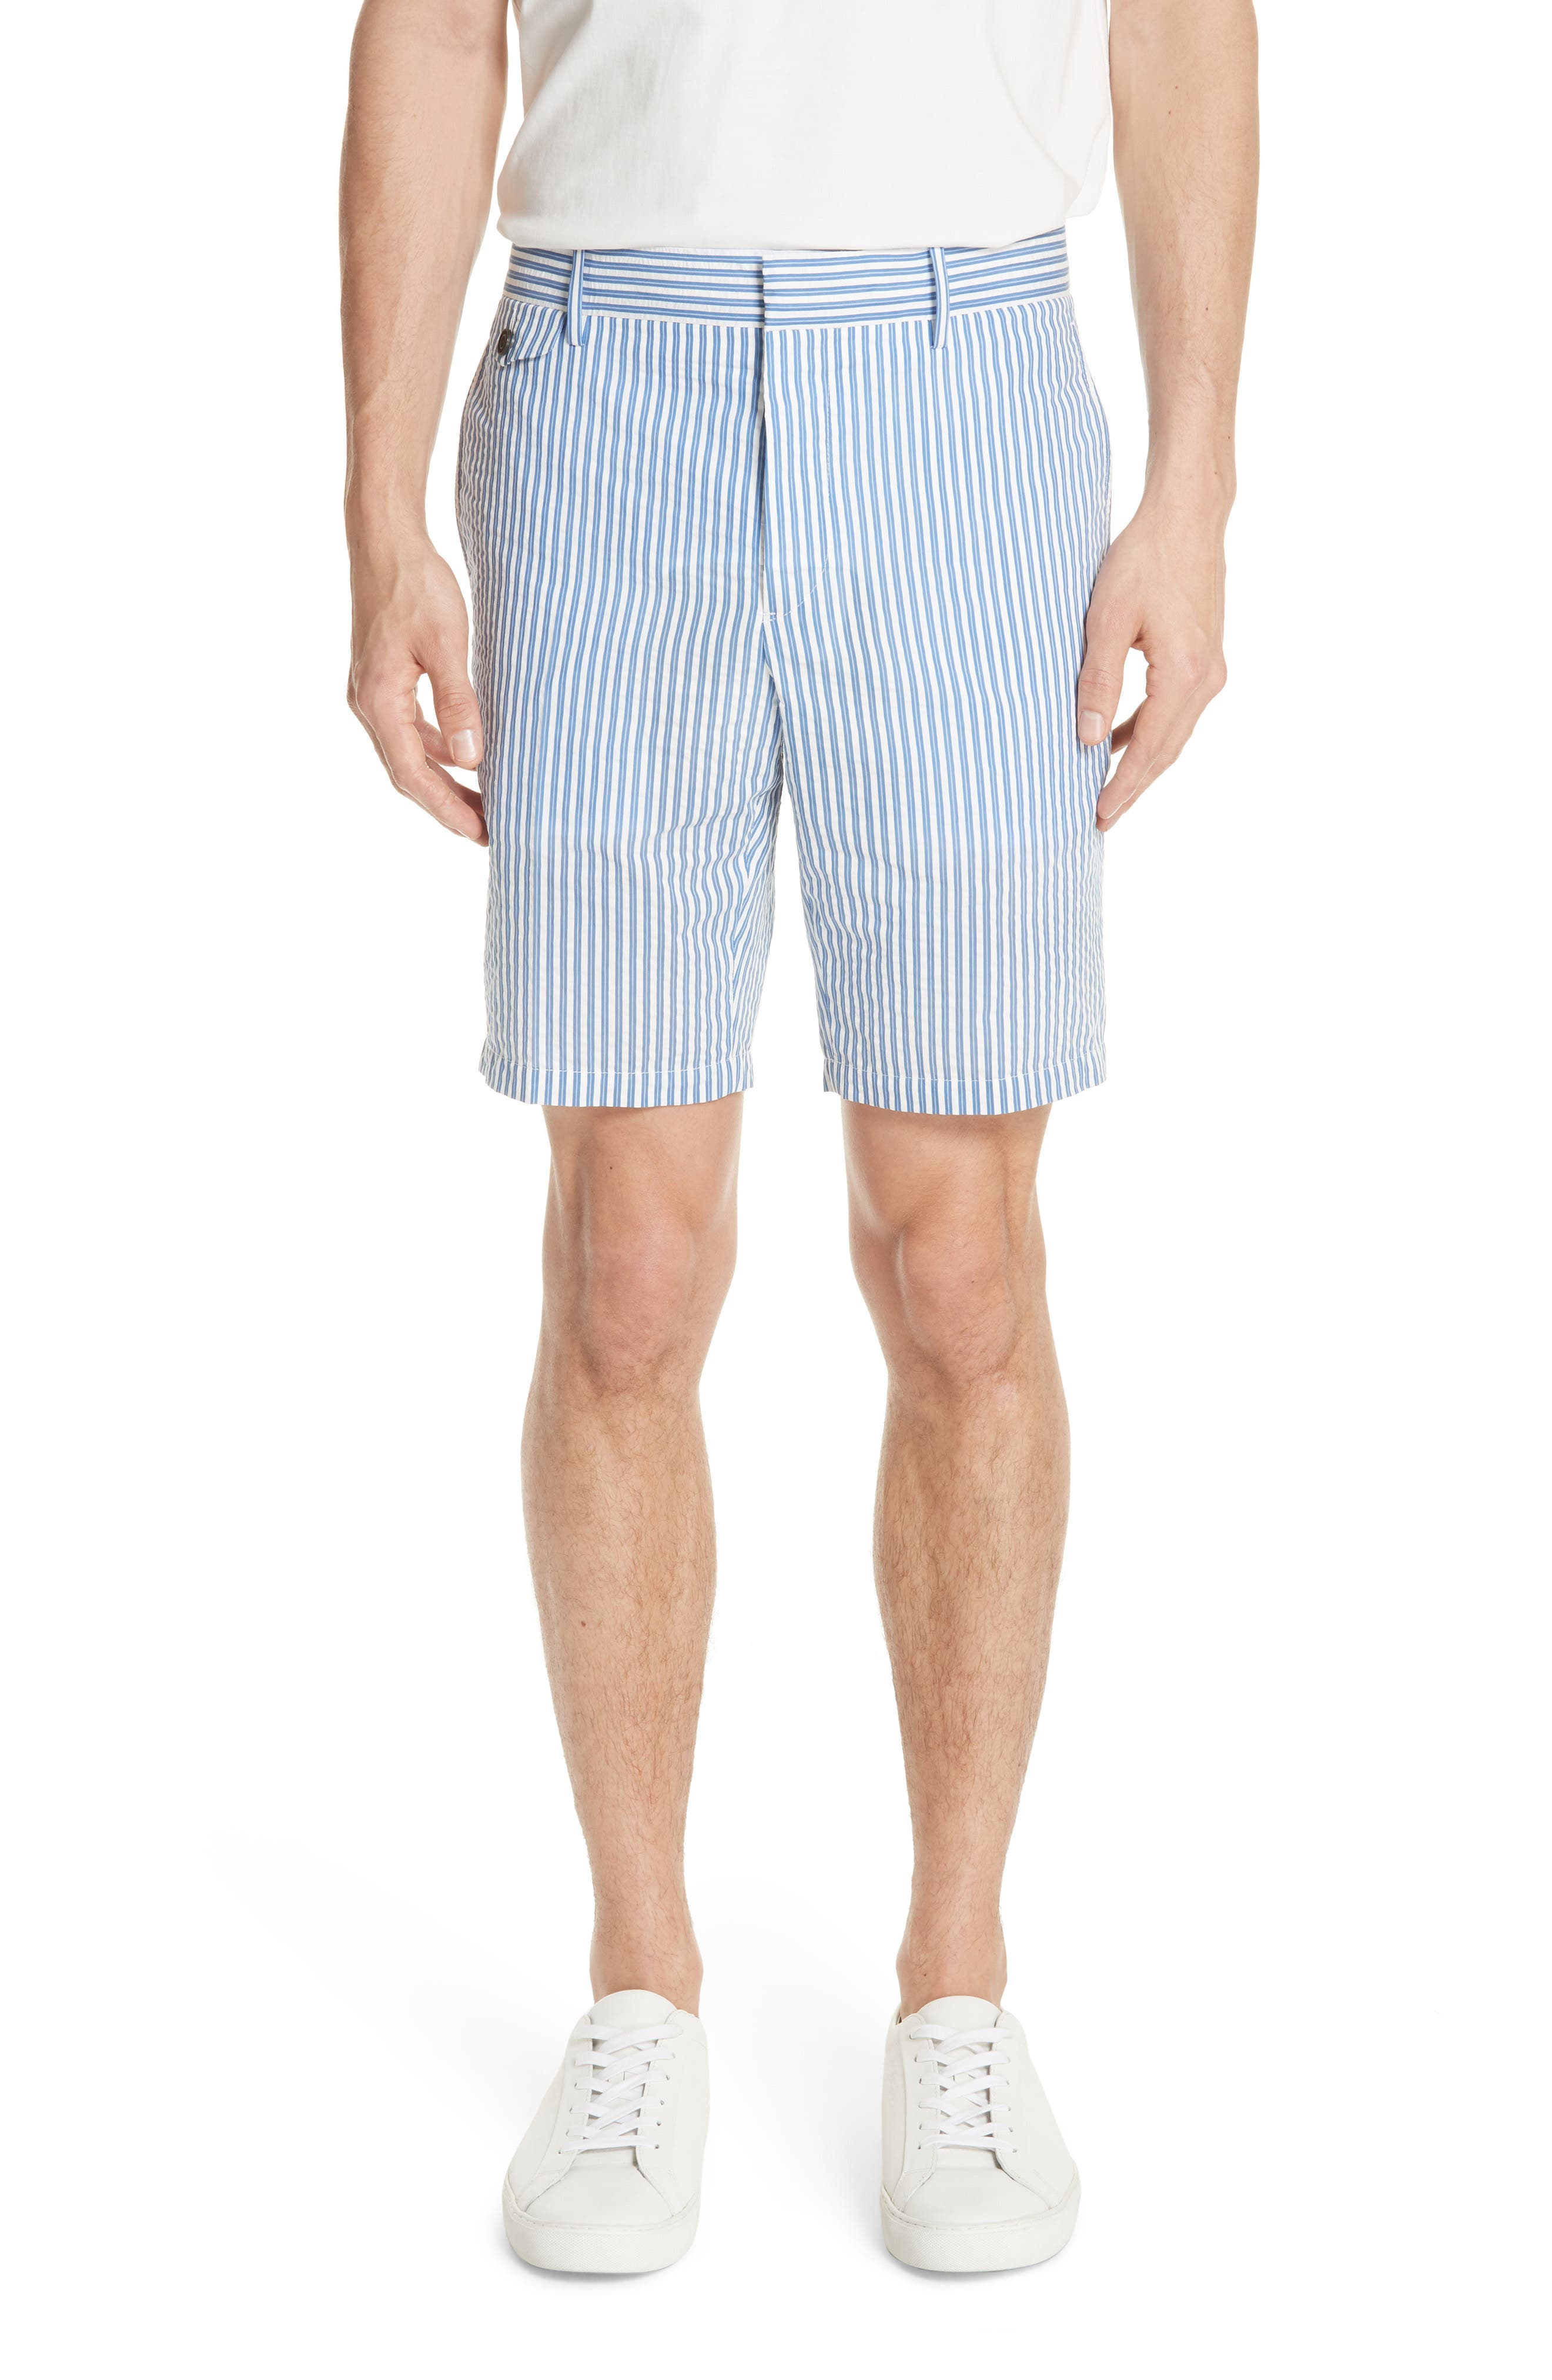 Serpentine Stripe Shorts,                             Main thumbnail 1, color,                             Navy